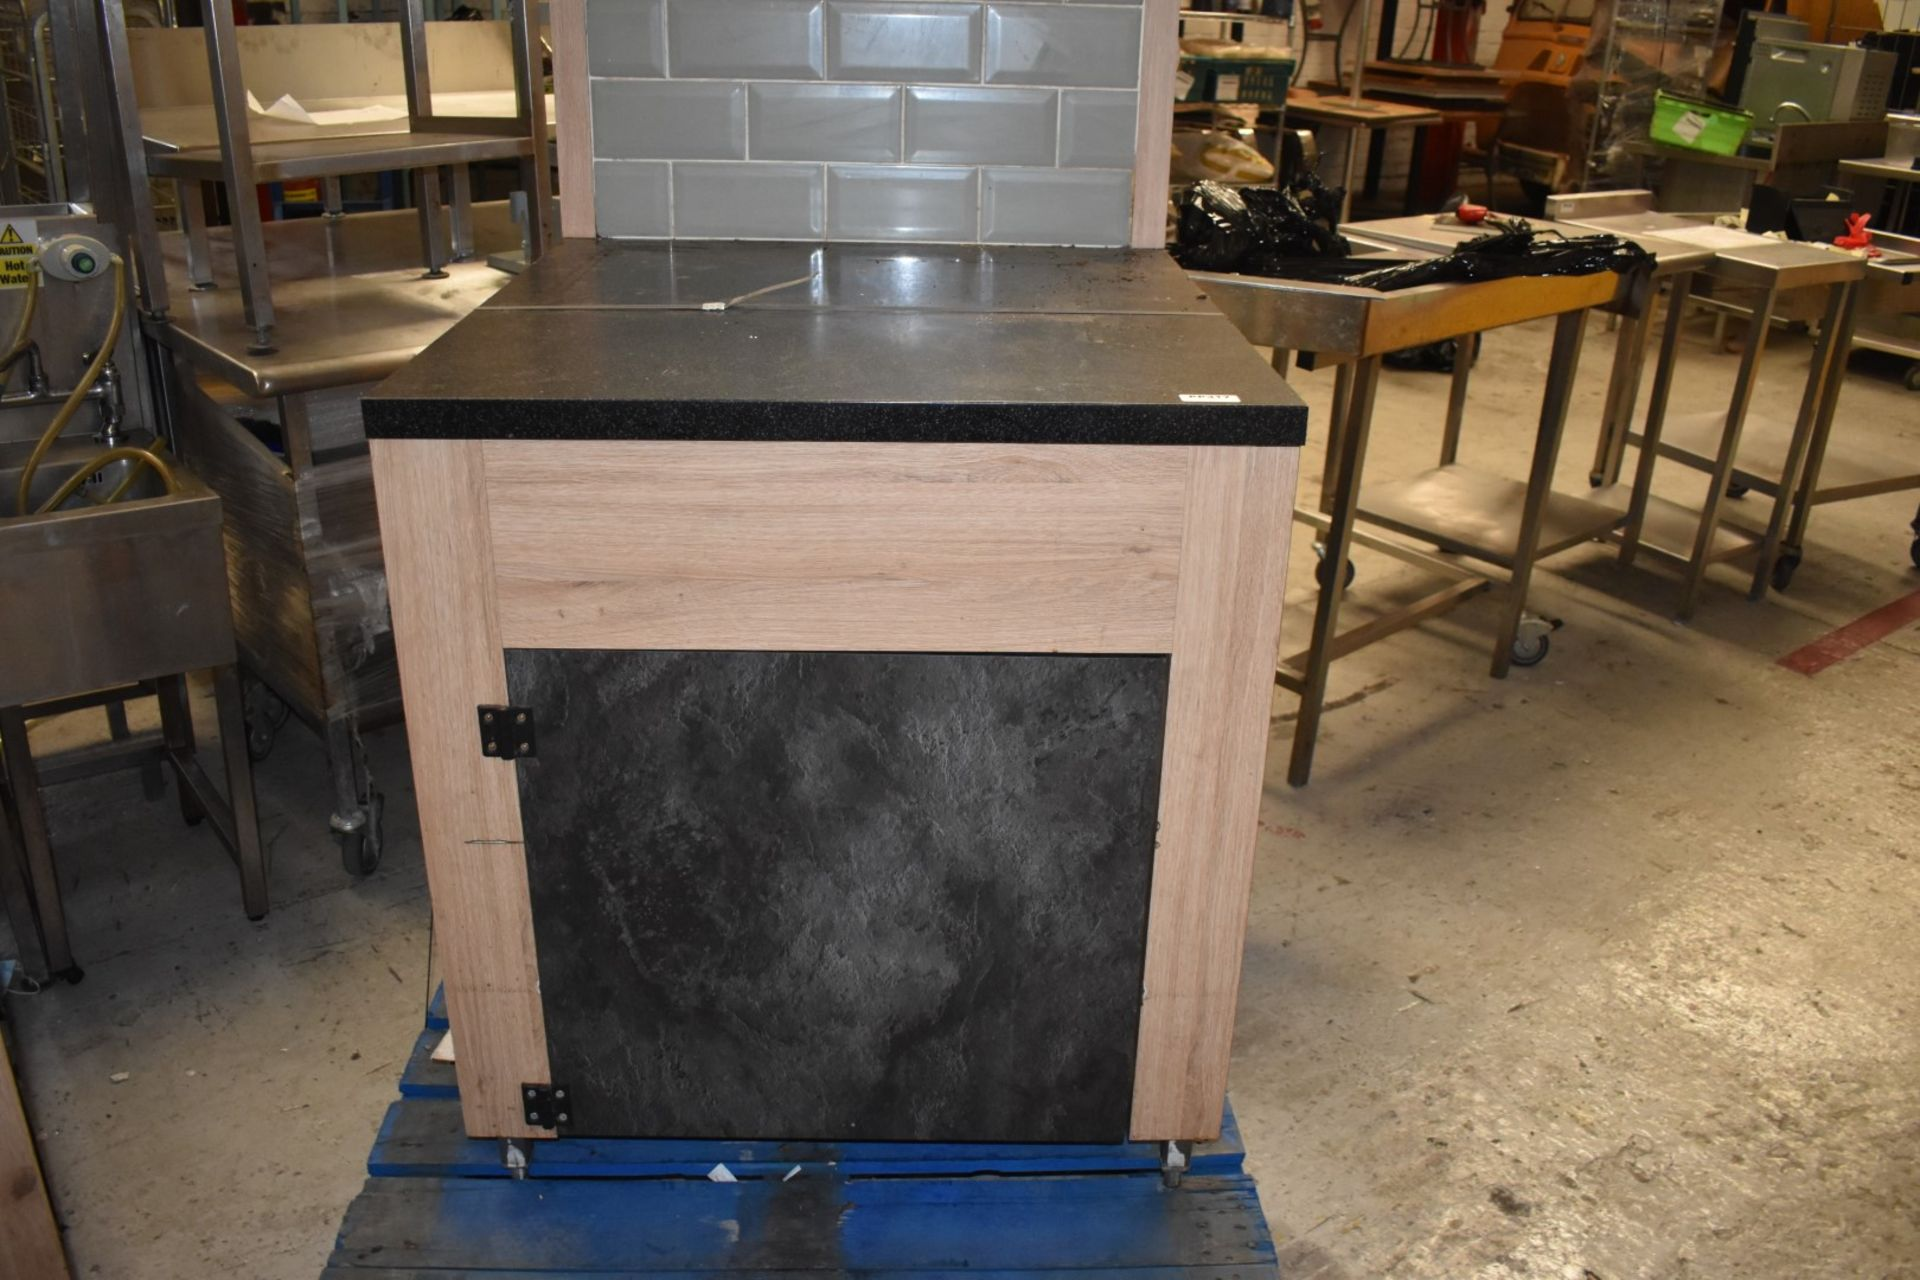 1 x Modern Coffee Machine Stand With Undercabinet Storage and Tiled Back - Size H91 x W80 x D87 - Image 7 of 7